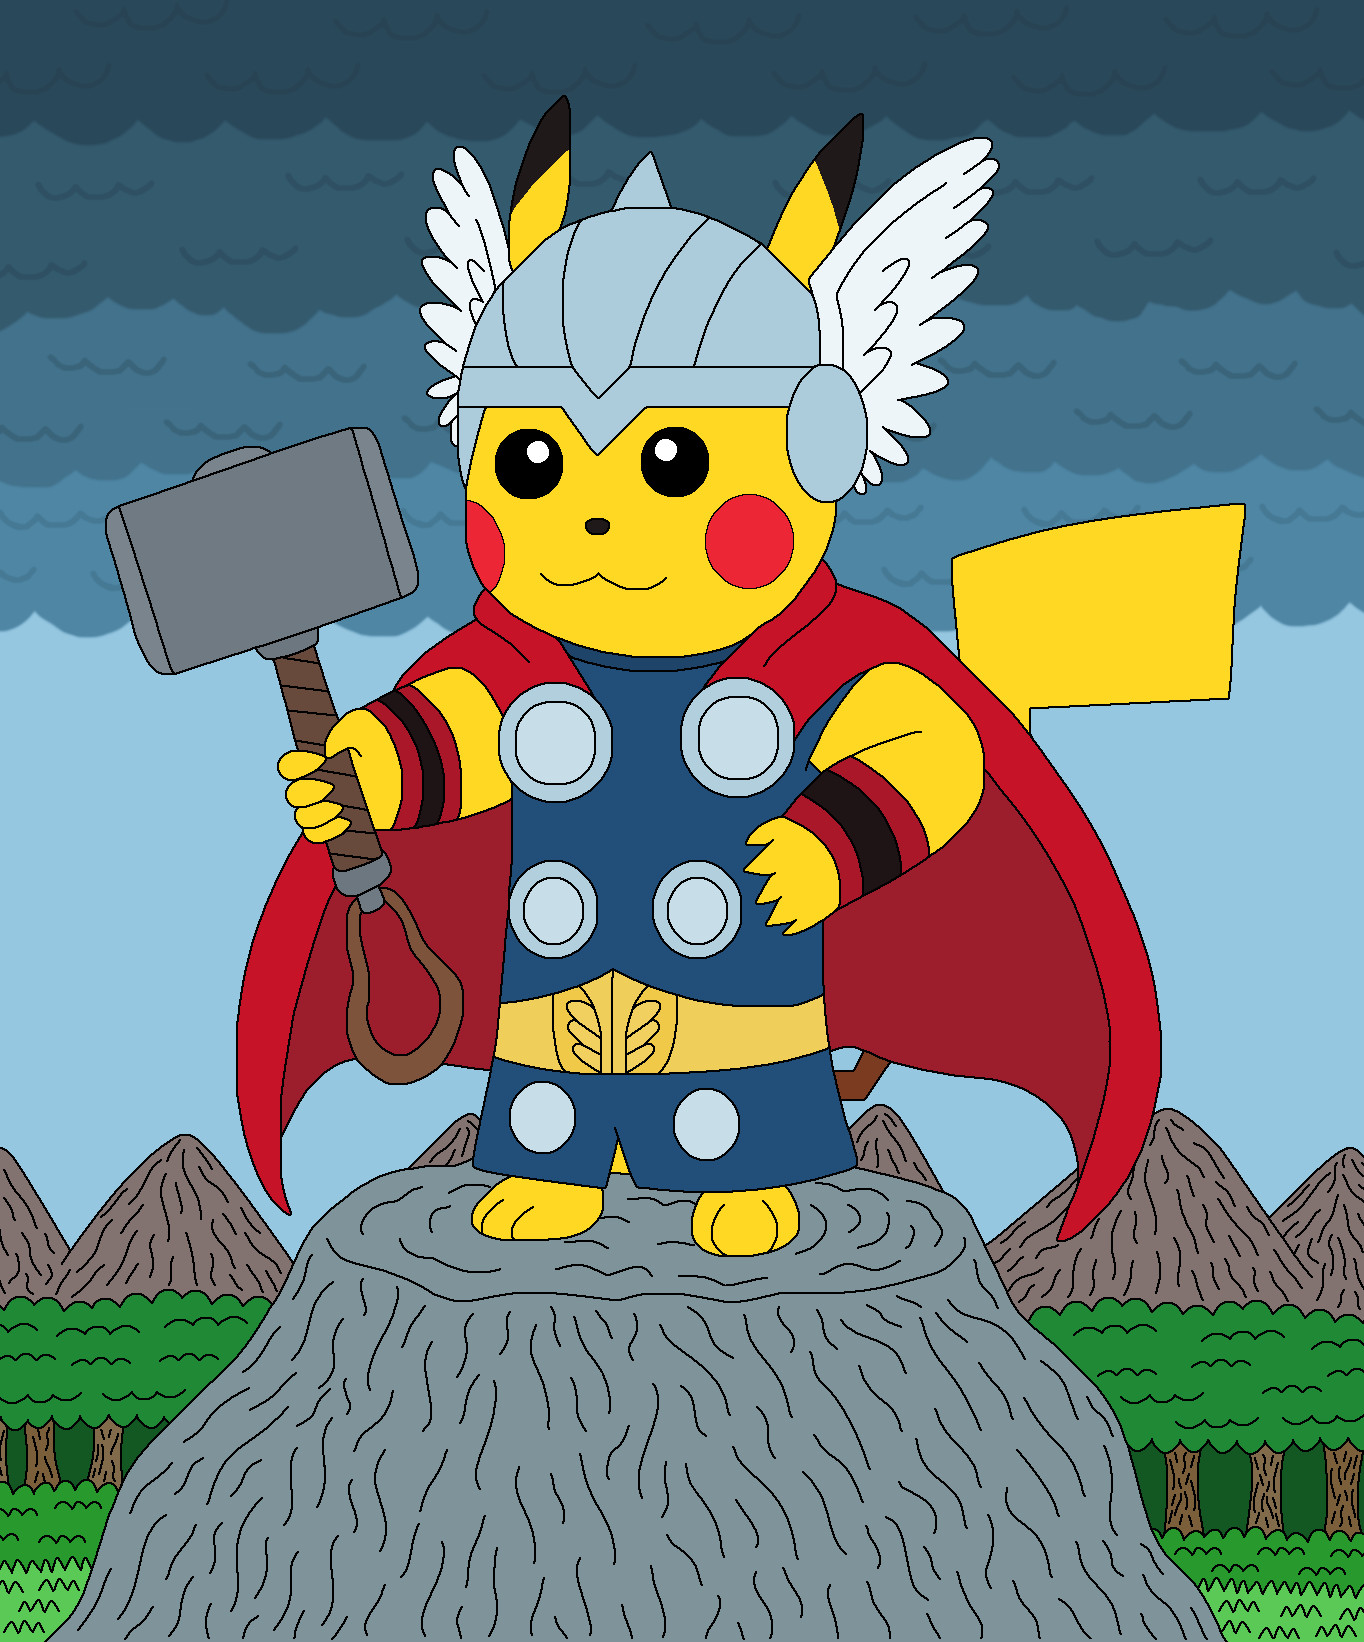 pikachu_as_thor__the_god_of_thunder_by_m